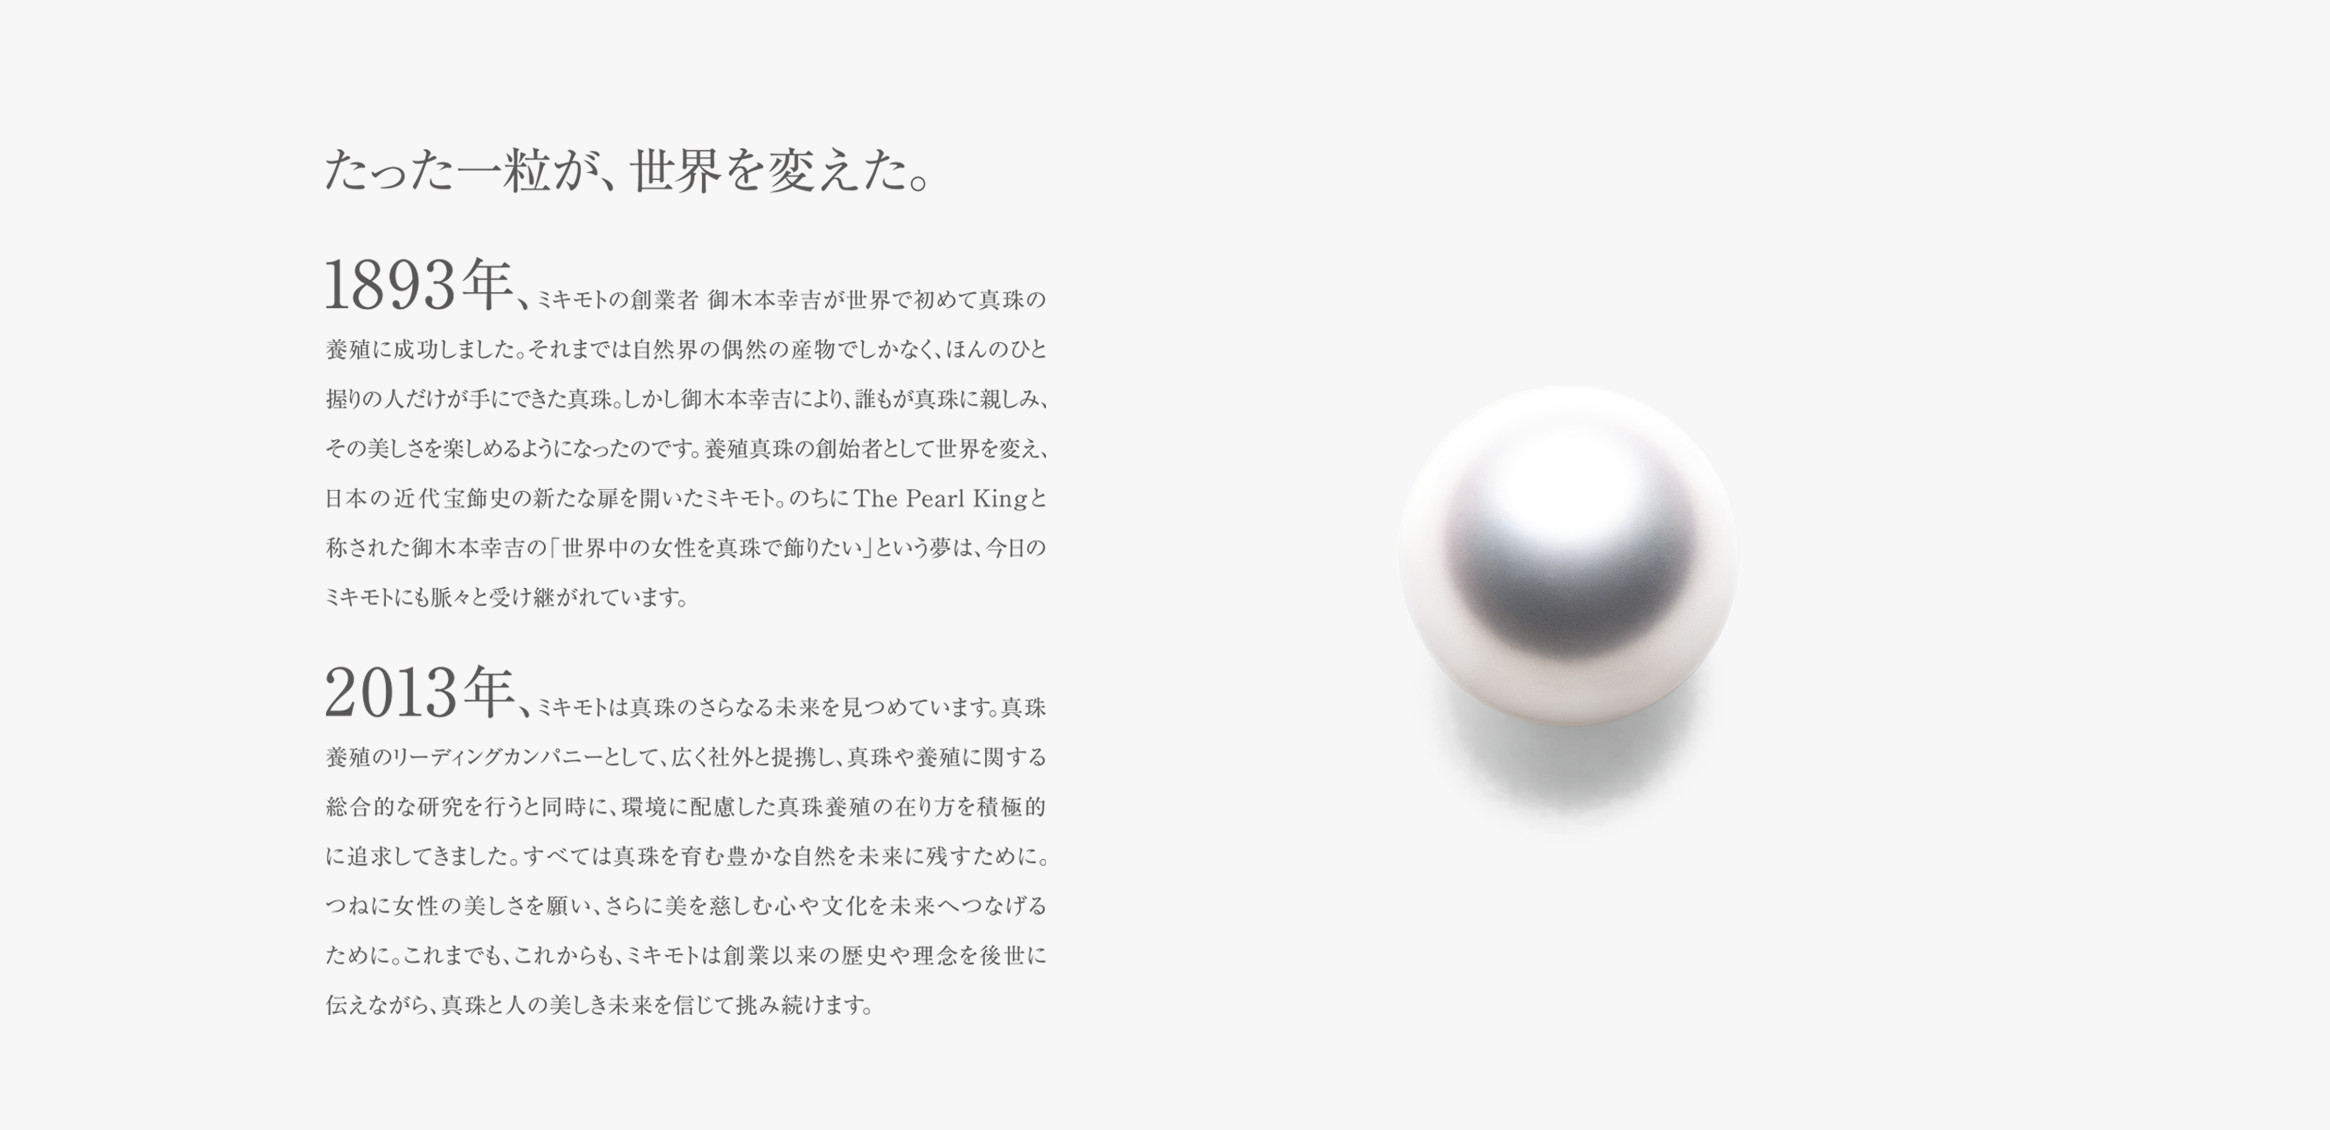 Catalog commemorating the 120th anniversary of the invention of Mikimoto pearls1枚目